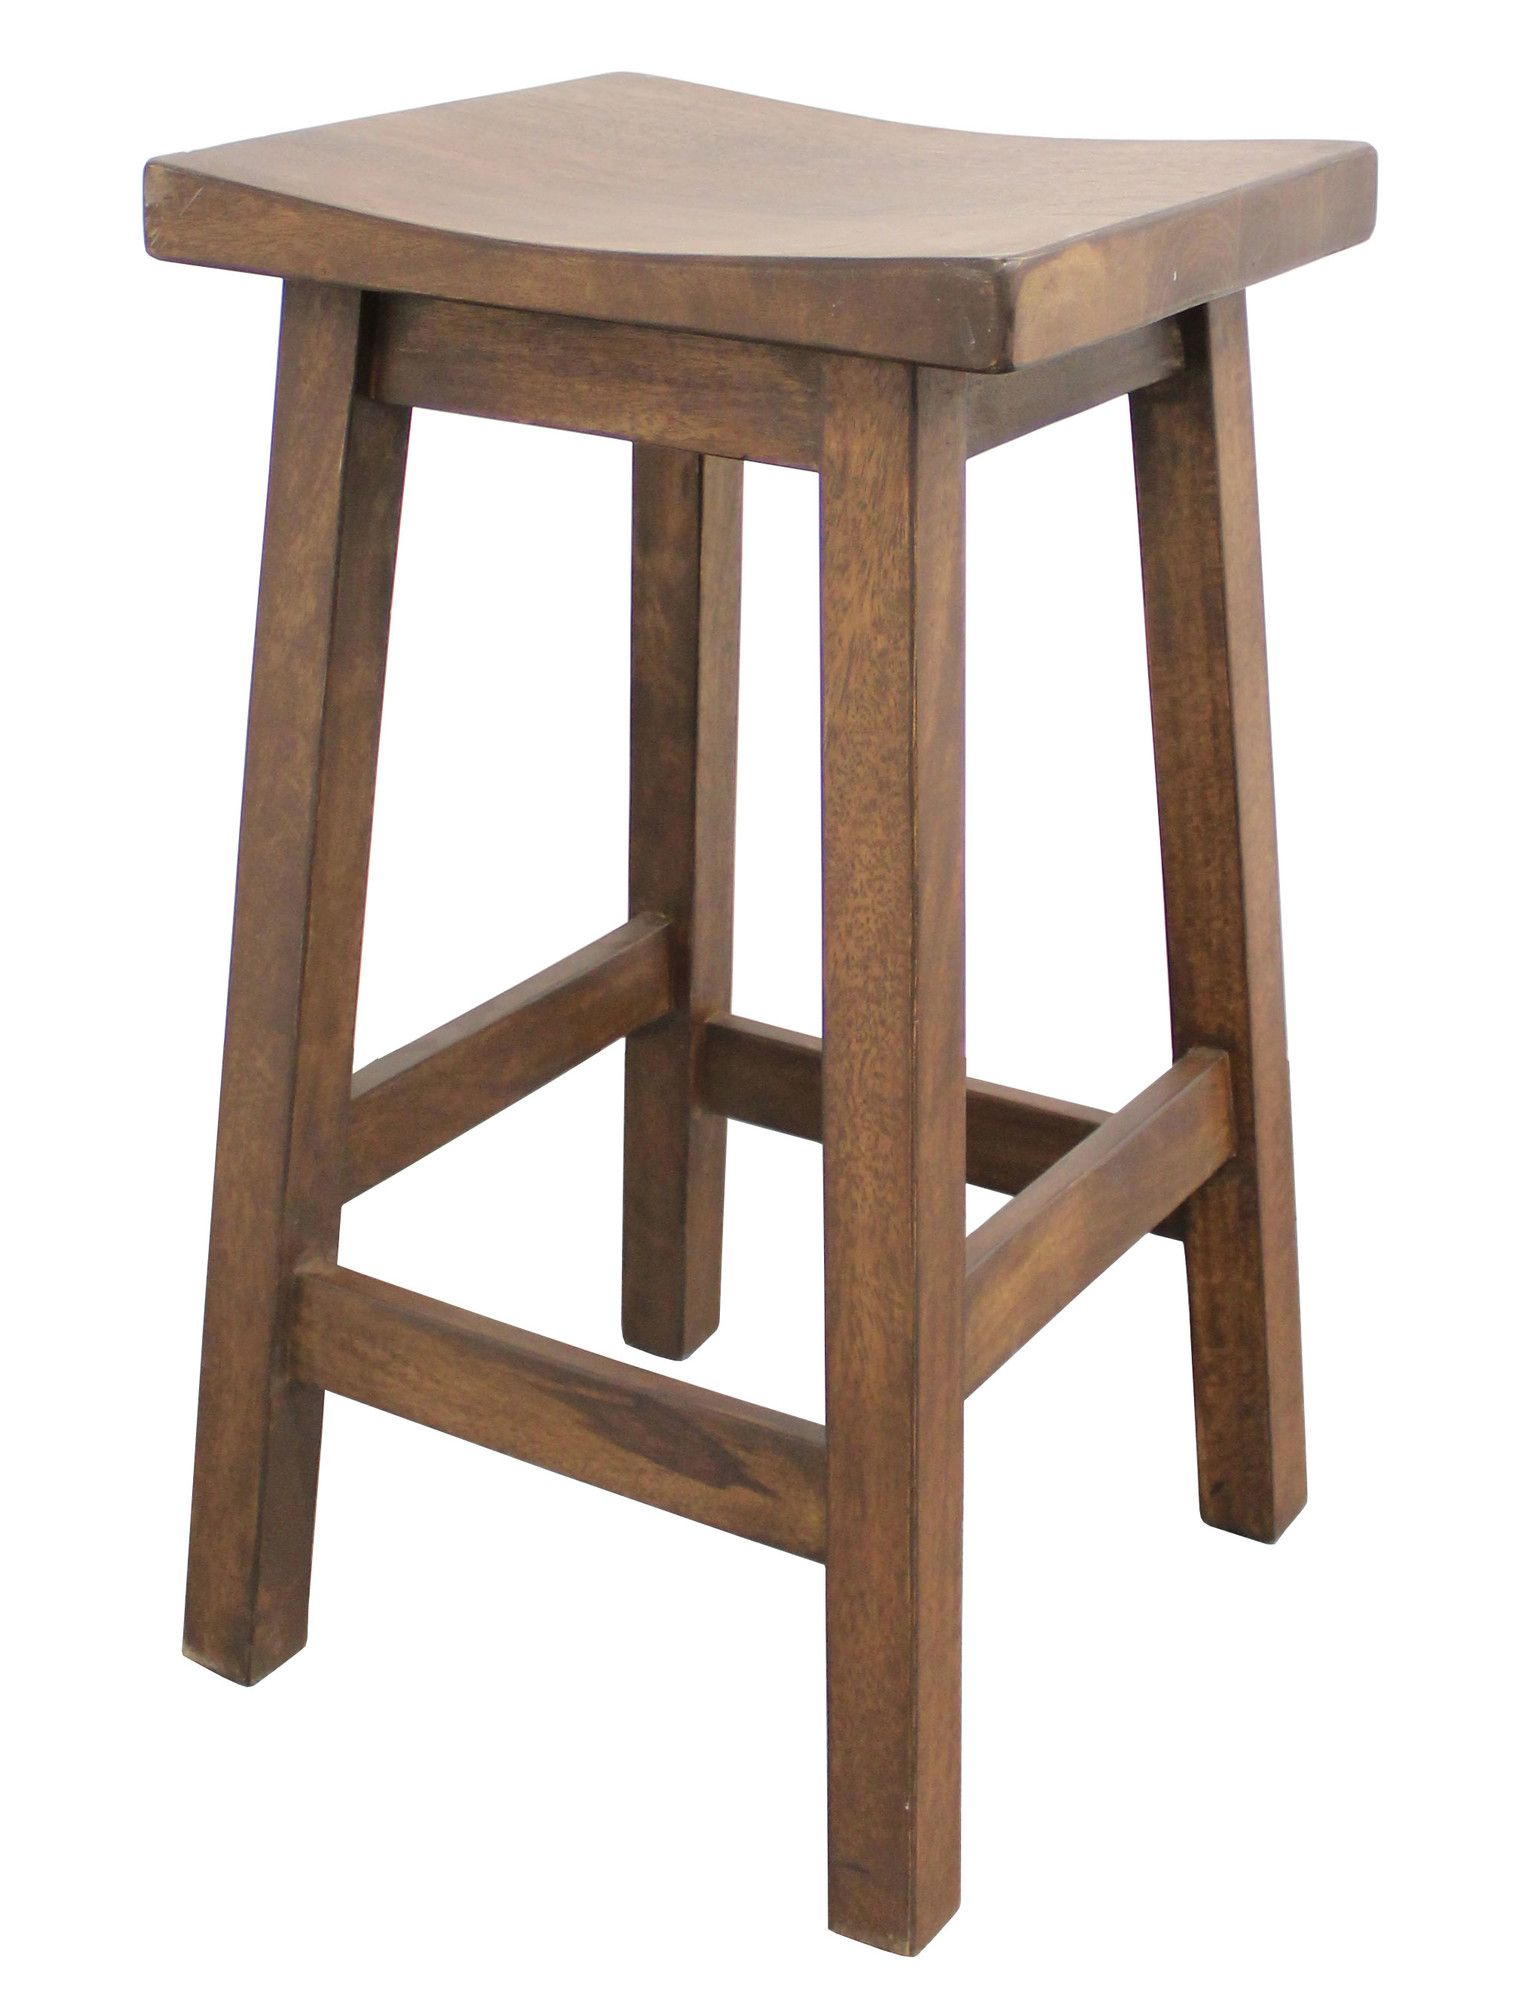 The Patriot Wooden Bar Stool Dodicci Wooden Bar Stools Bar Stools Kitchen Bar Stools